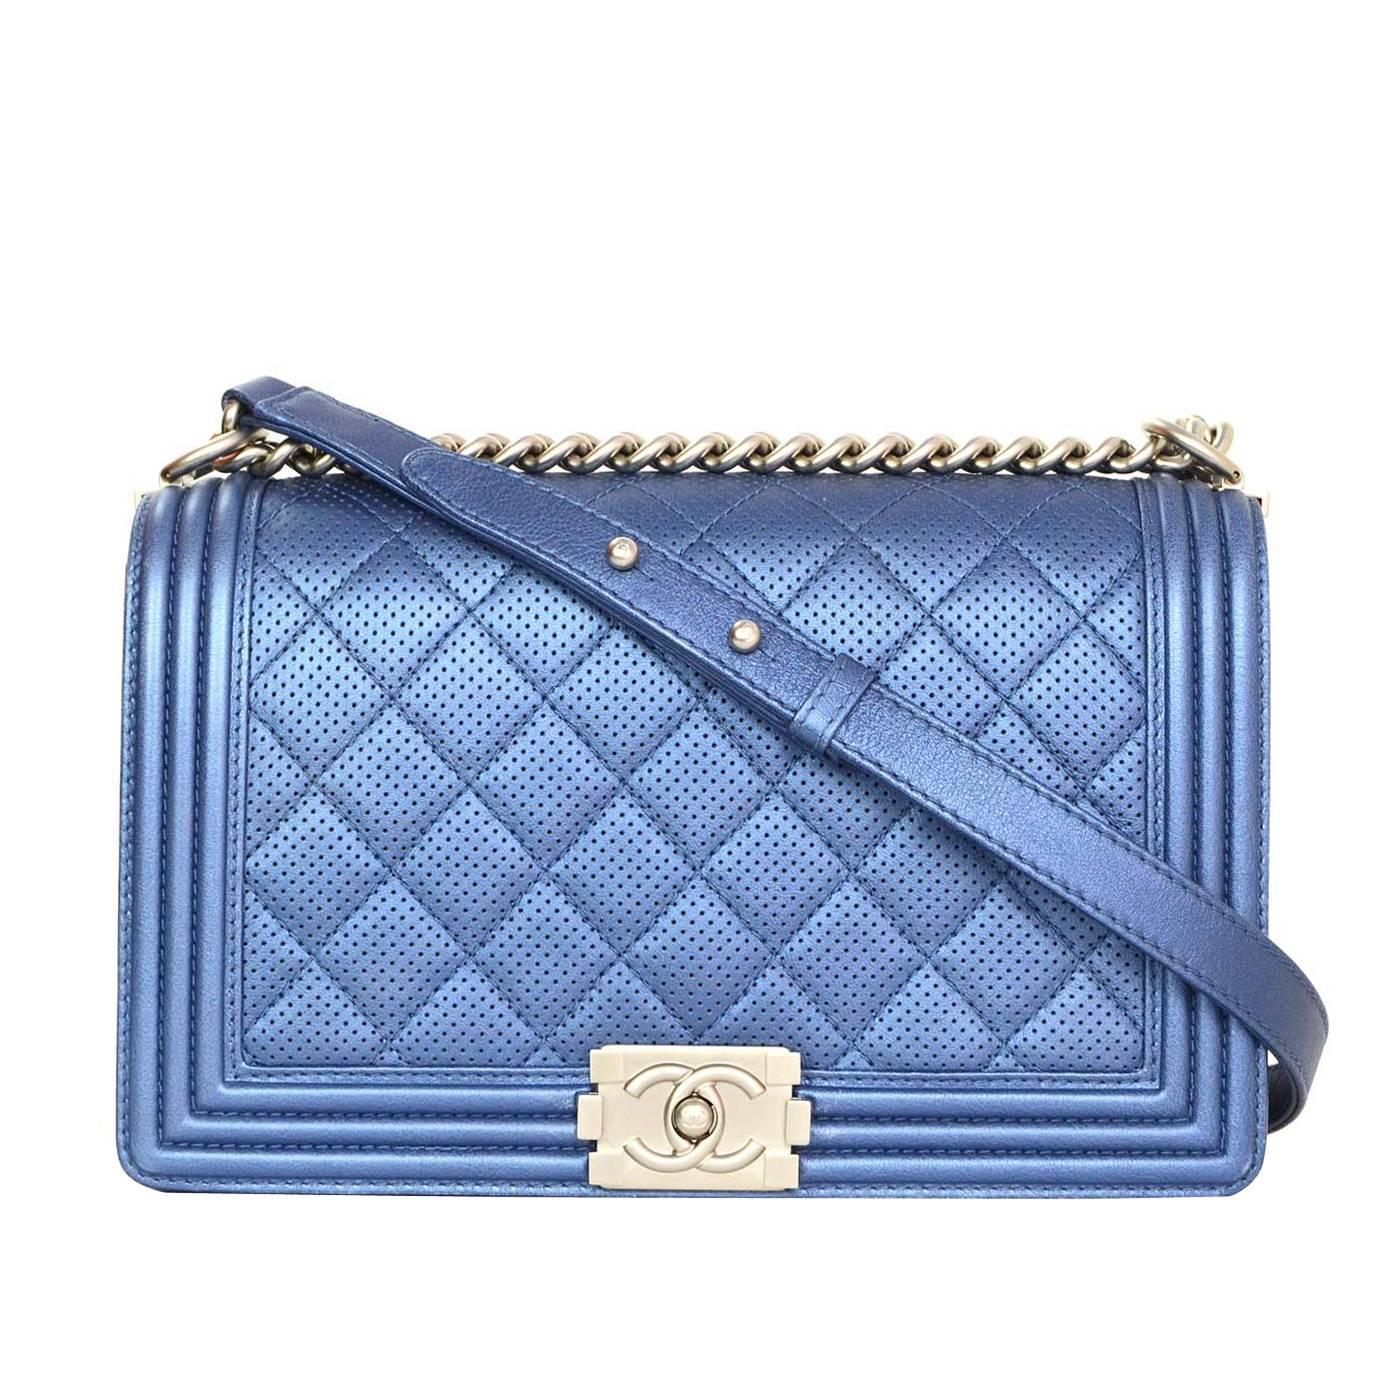 Chanel Metallic Blue Perforated Quilted New Medium Boy Bag